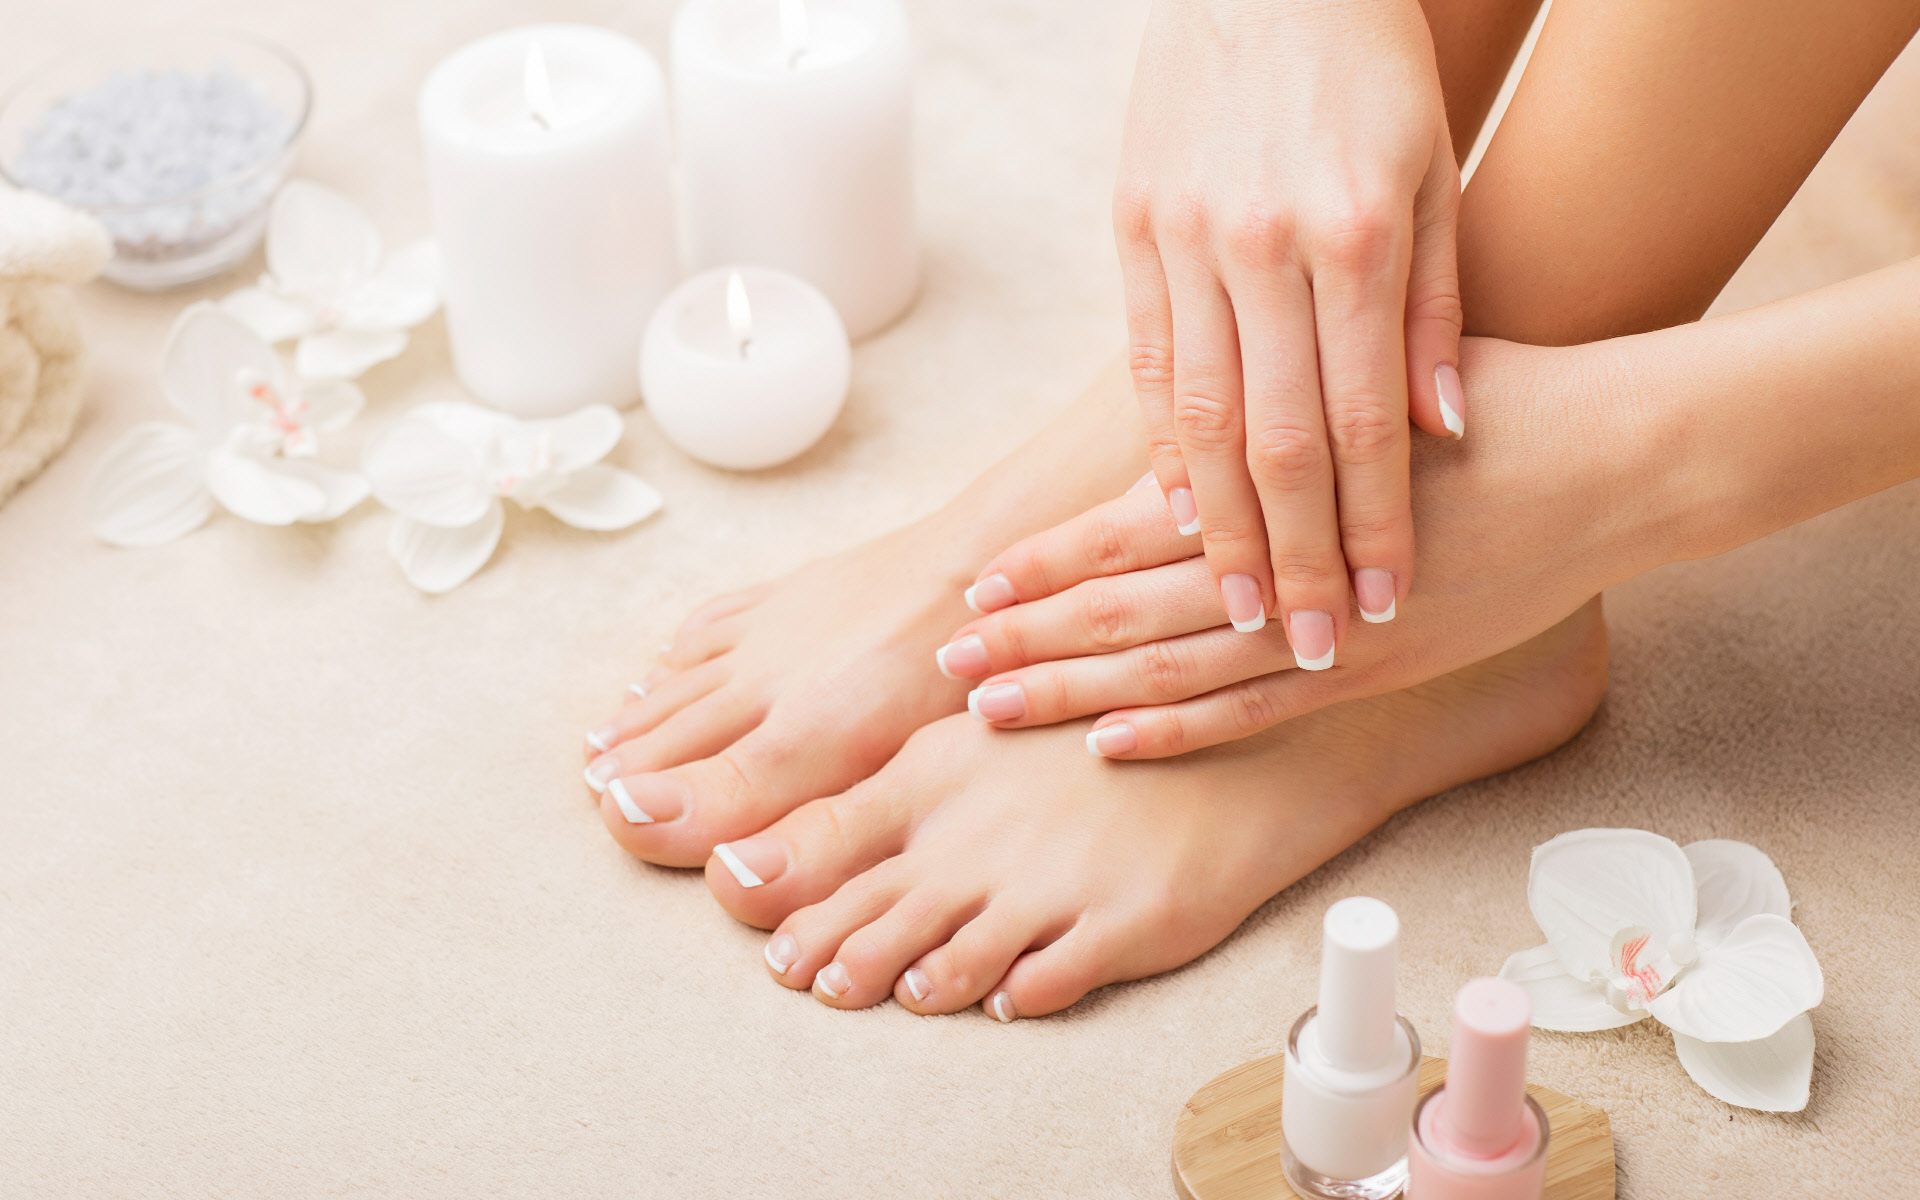 Ultra Beauty Salon in Whyteleafe - Manicures & Pedicures